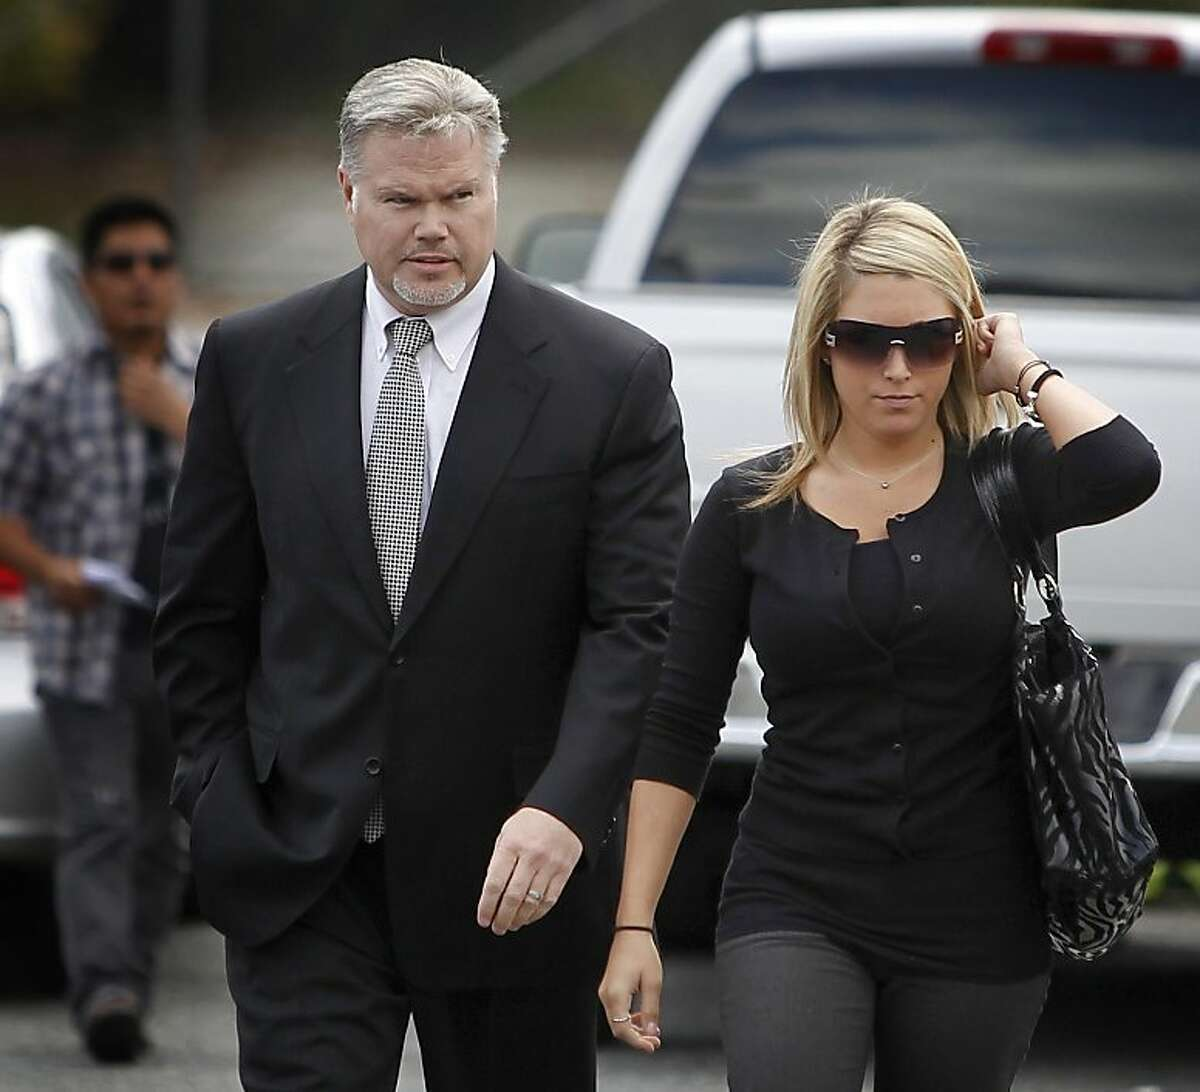 Former private investigator Christopher Butler arrives for a hearing at Contra Costa County Superior Court with two unidentified women in Walnut Creek, Calif. on Thursday, April 21, 2011. Prosecutors allege that Butler resold illegal drugs that were stoleFormer private investigator Christopher Butler arrives for a hearing at Contra Costa County Superior Court with two unidentified women in Walnut Creek, Calif. on Thursday, April 21, 2011. Prosecutors allege that Butler resold illegal drugs that were stolen from evidence lockers by Norman Wielsch.